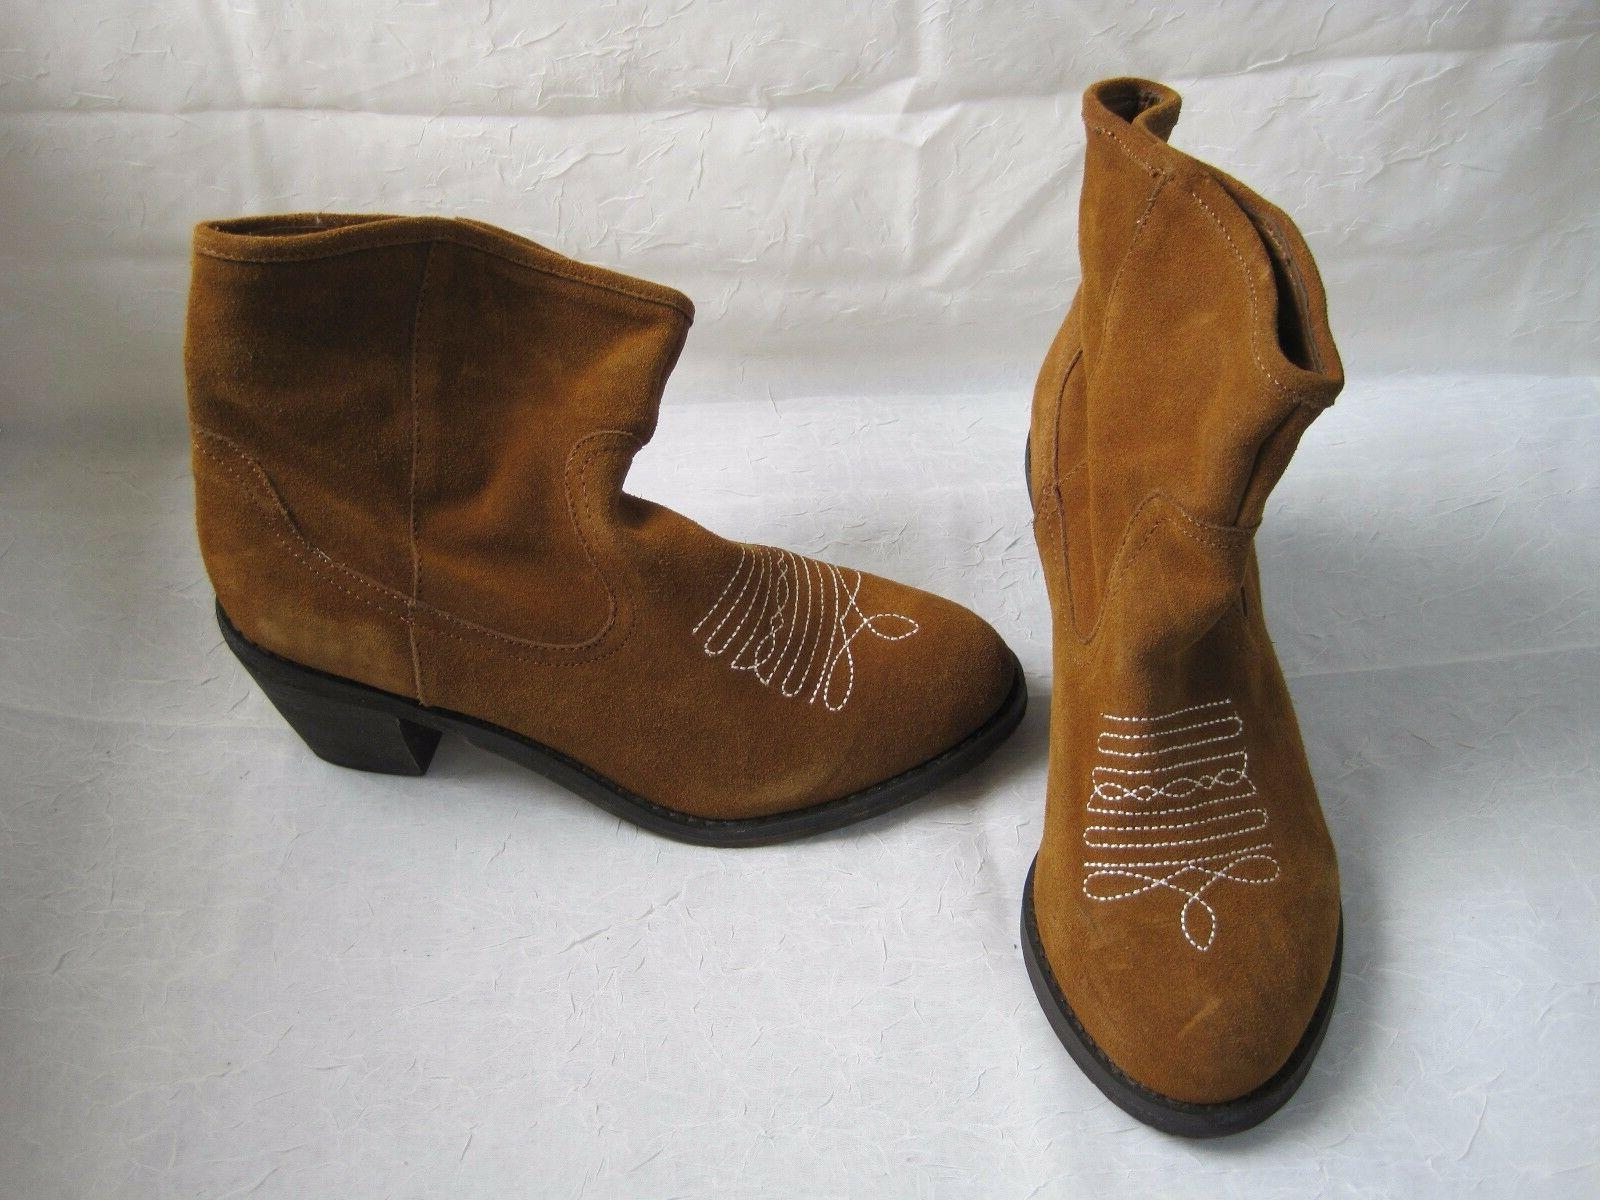 New Women's Skechers Aloft Tex Mex Leather Suede Boots Style